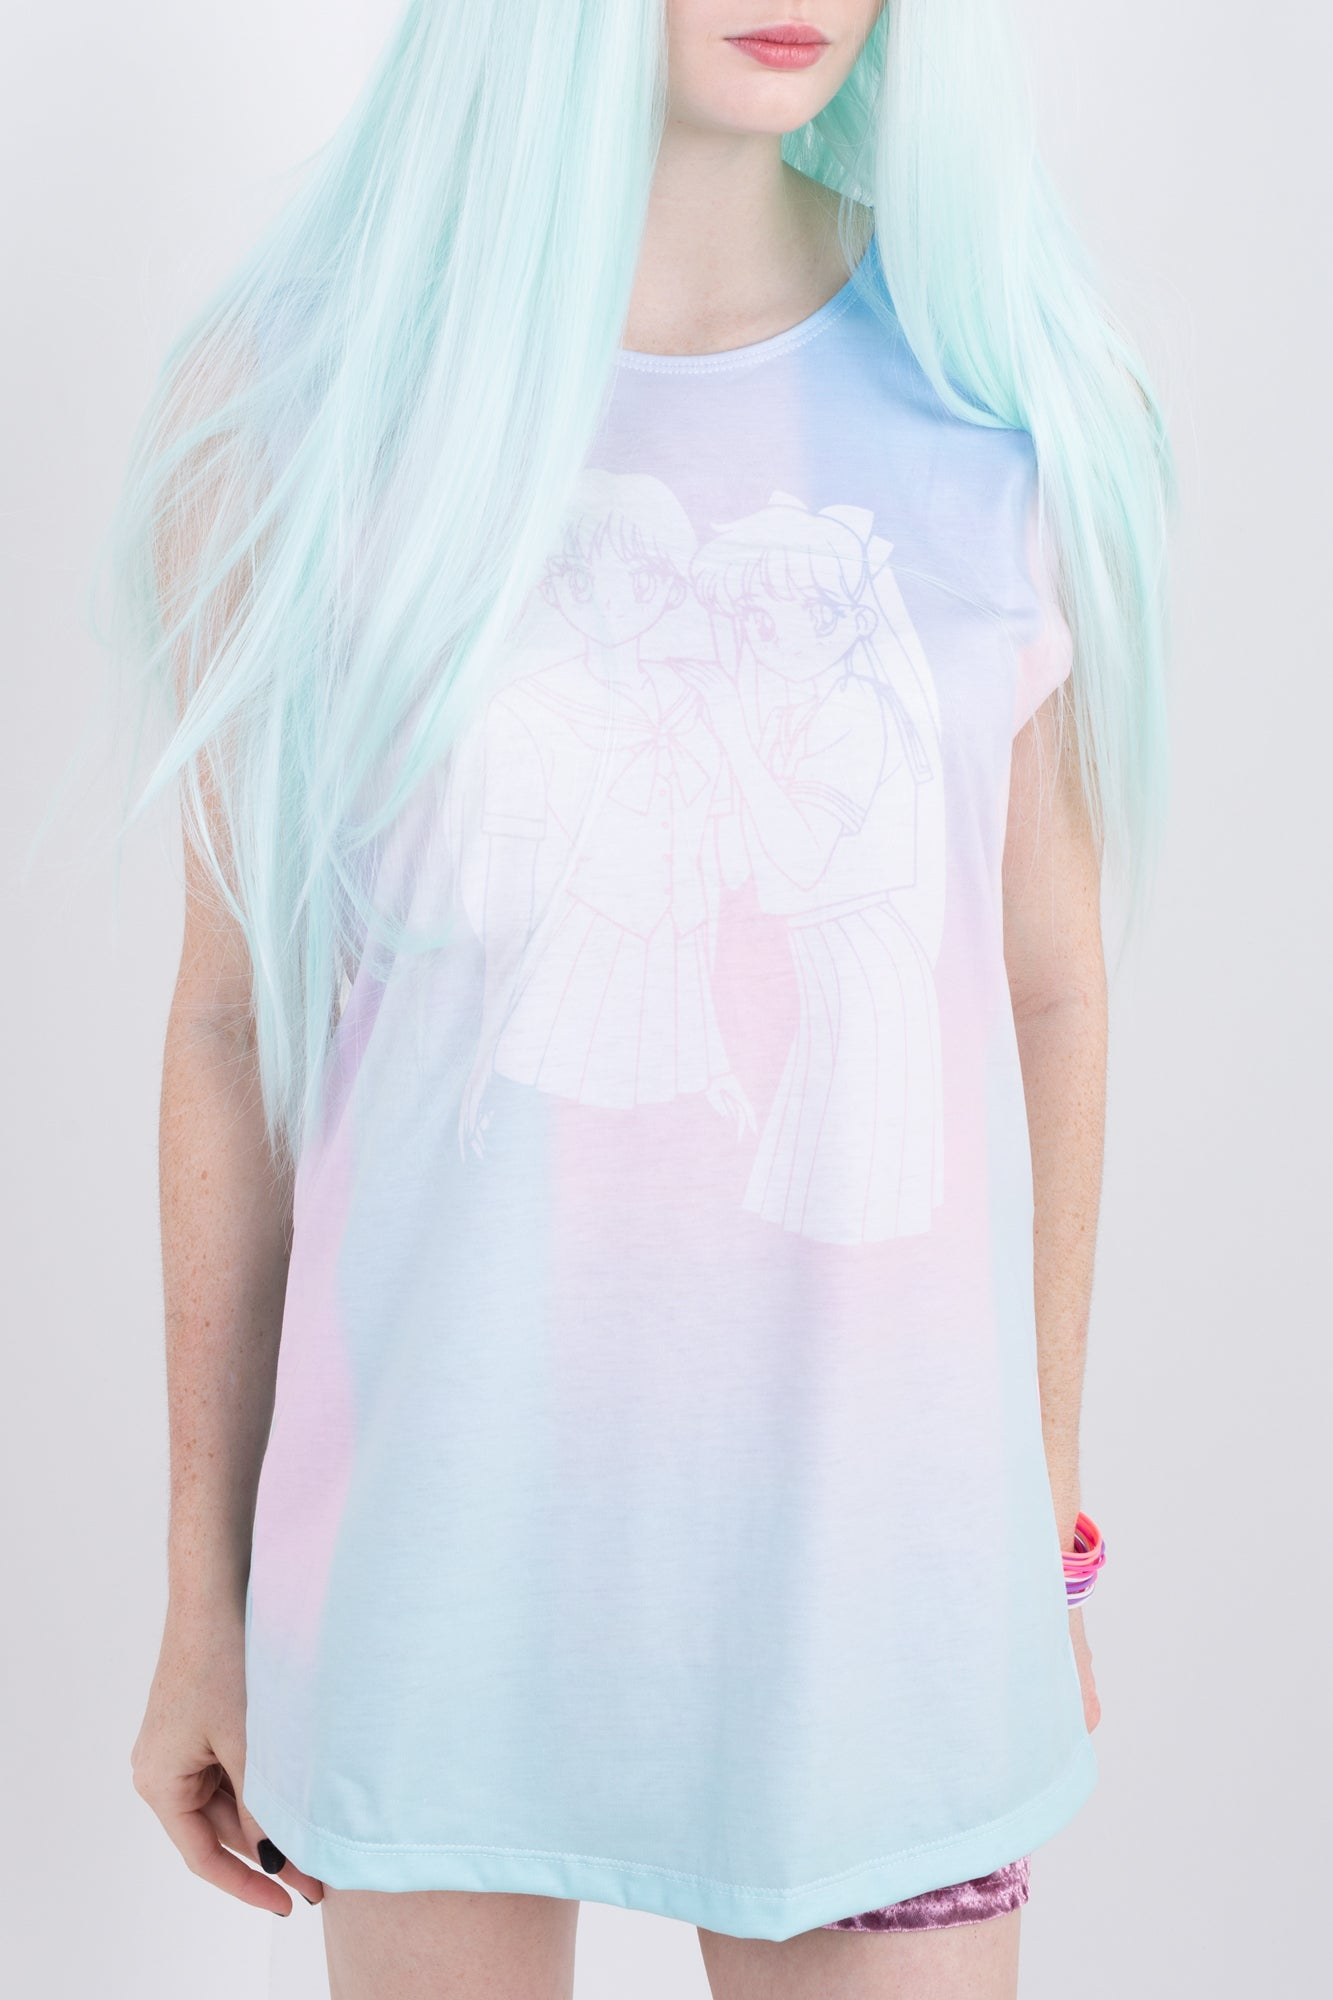 Magical Pastel Friends Sleeveless Tee